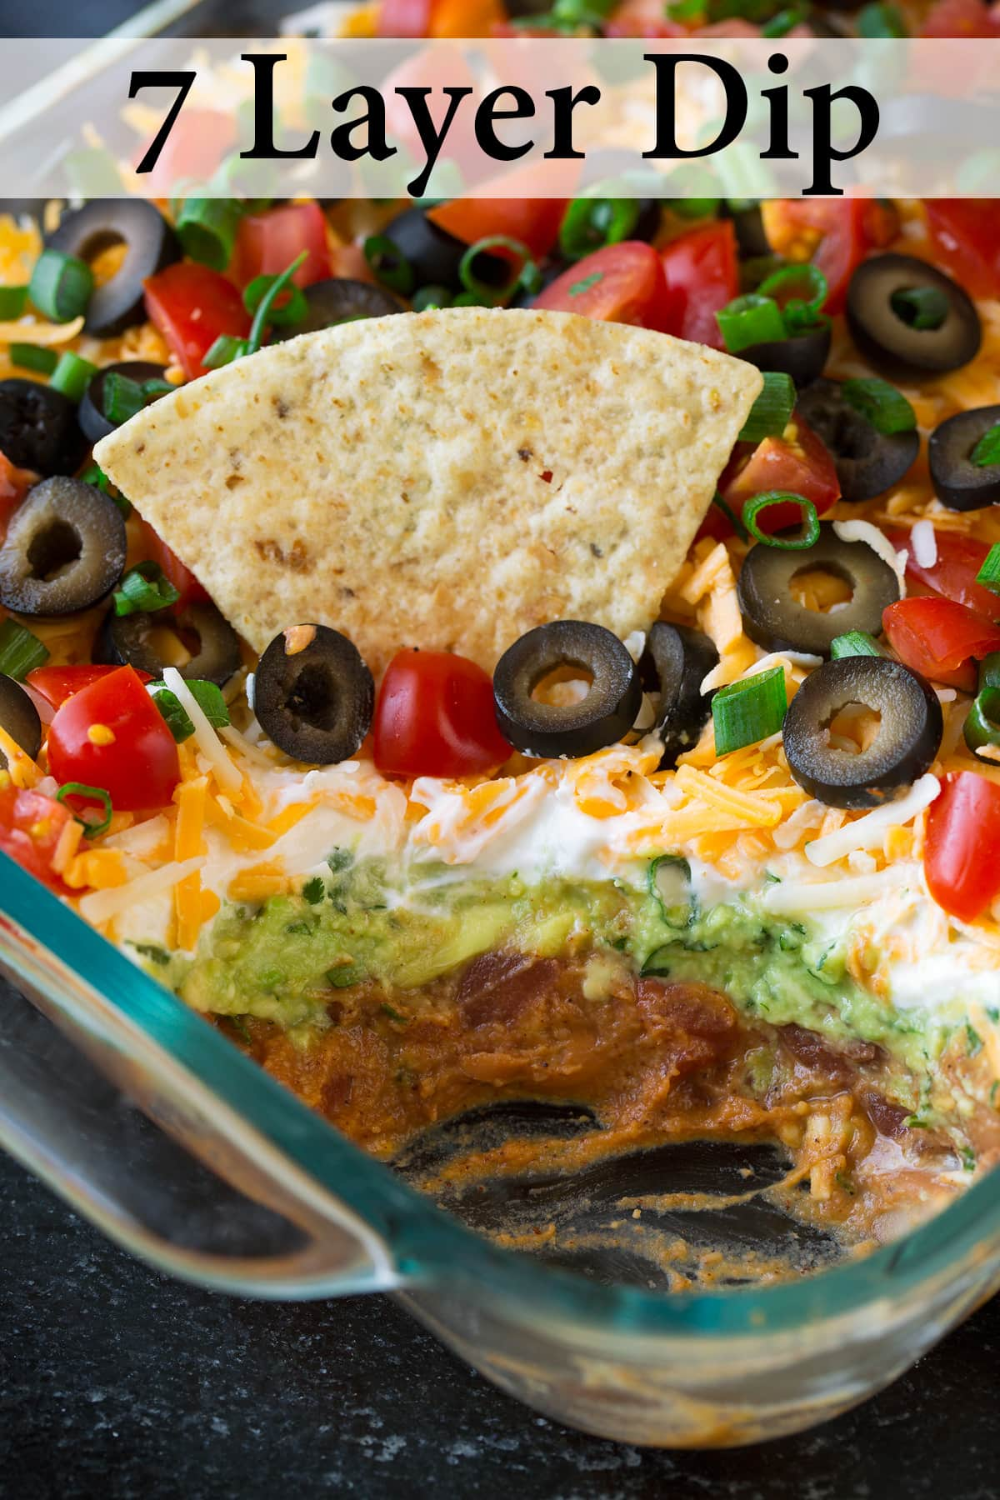 The Best 7 Layer Dip Made With Seasoned Refried Beans Guacamole Sour Cream Cheese Olives Tomatoes A Cookout Food Layered Dip Recipes Mexican Food Recipes